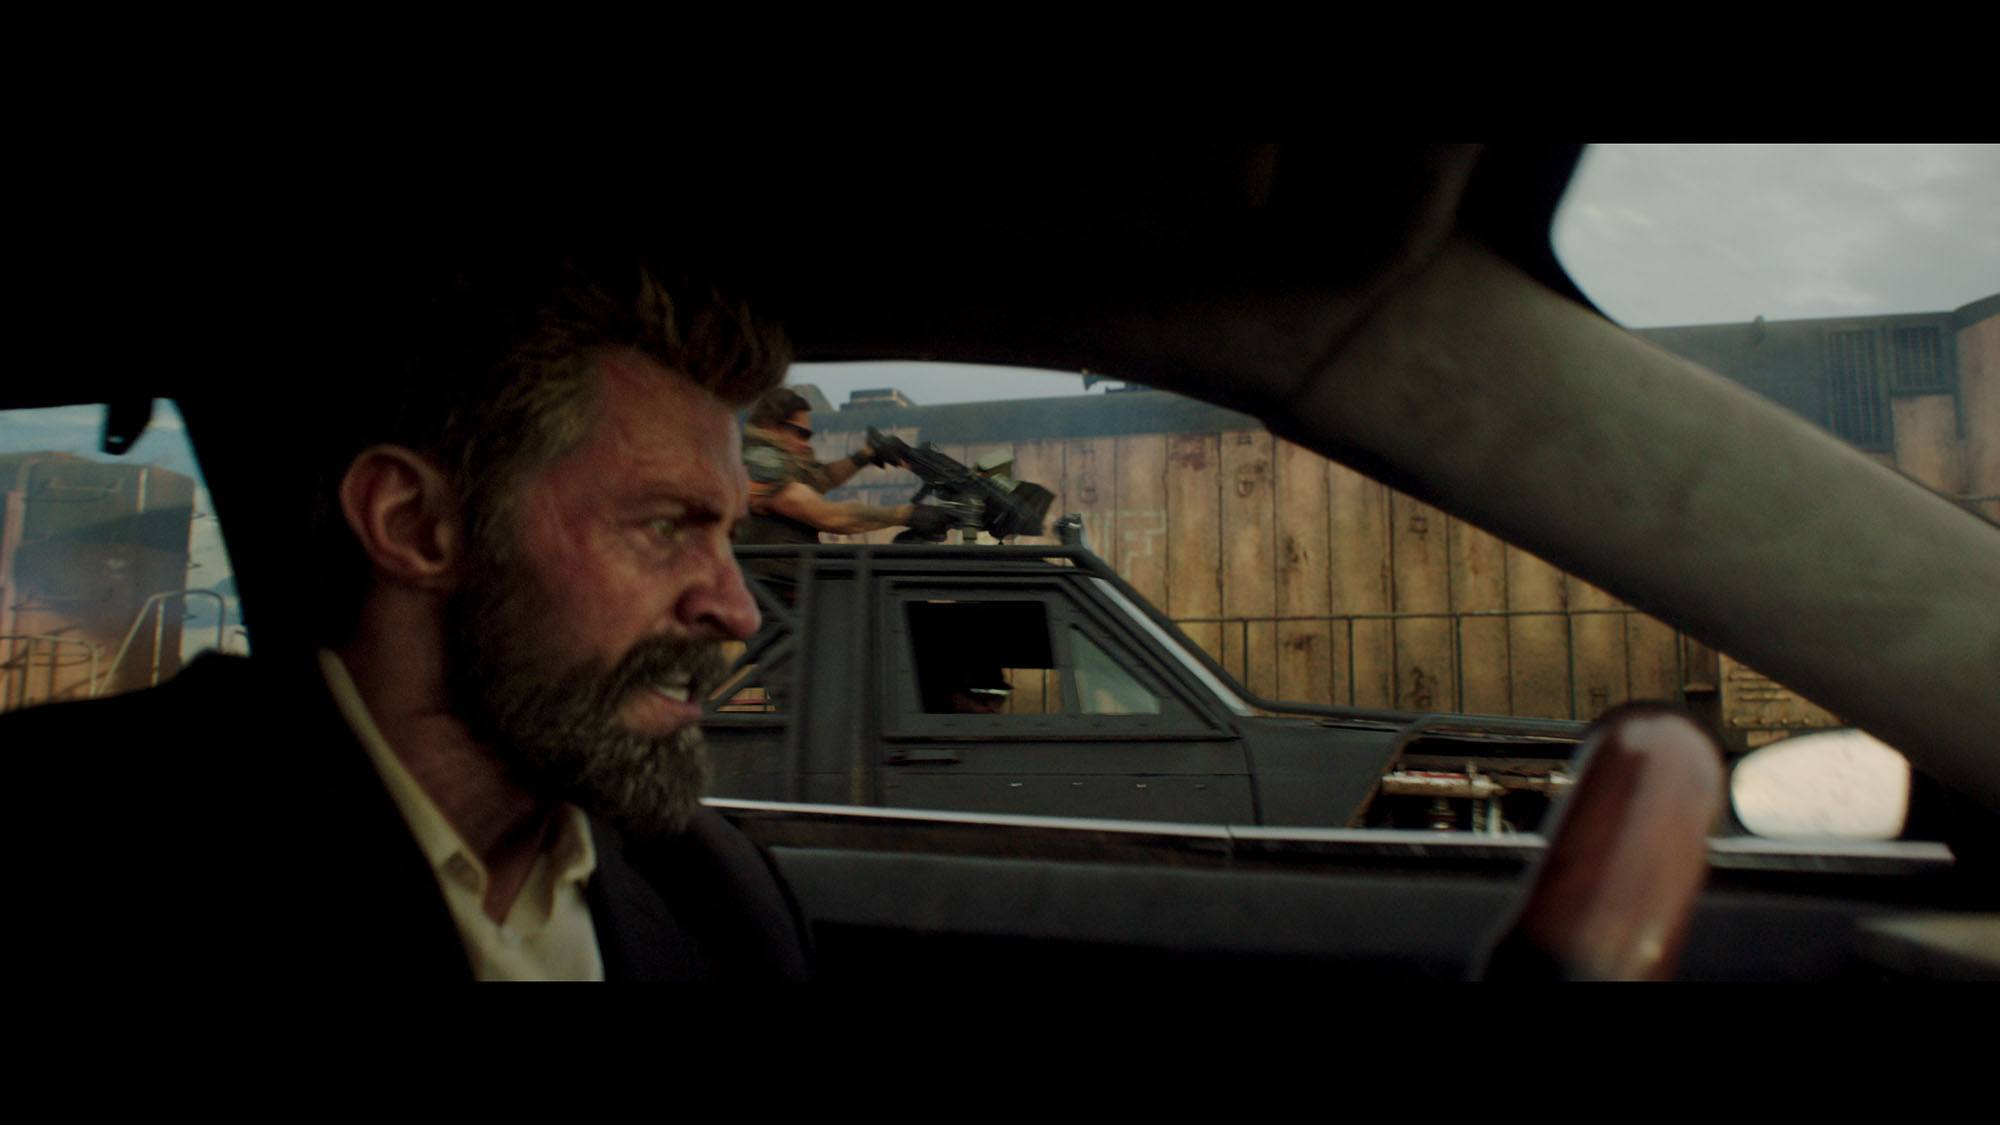 Final shot of Hugh Jackman's digital head and the stunt man's body in Logan (© 2017 Marvel. TM and © 2017 Twentieth Century Fox Film Corporation. All rights reserved. Not for sale or duplication.)